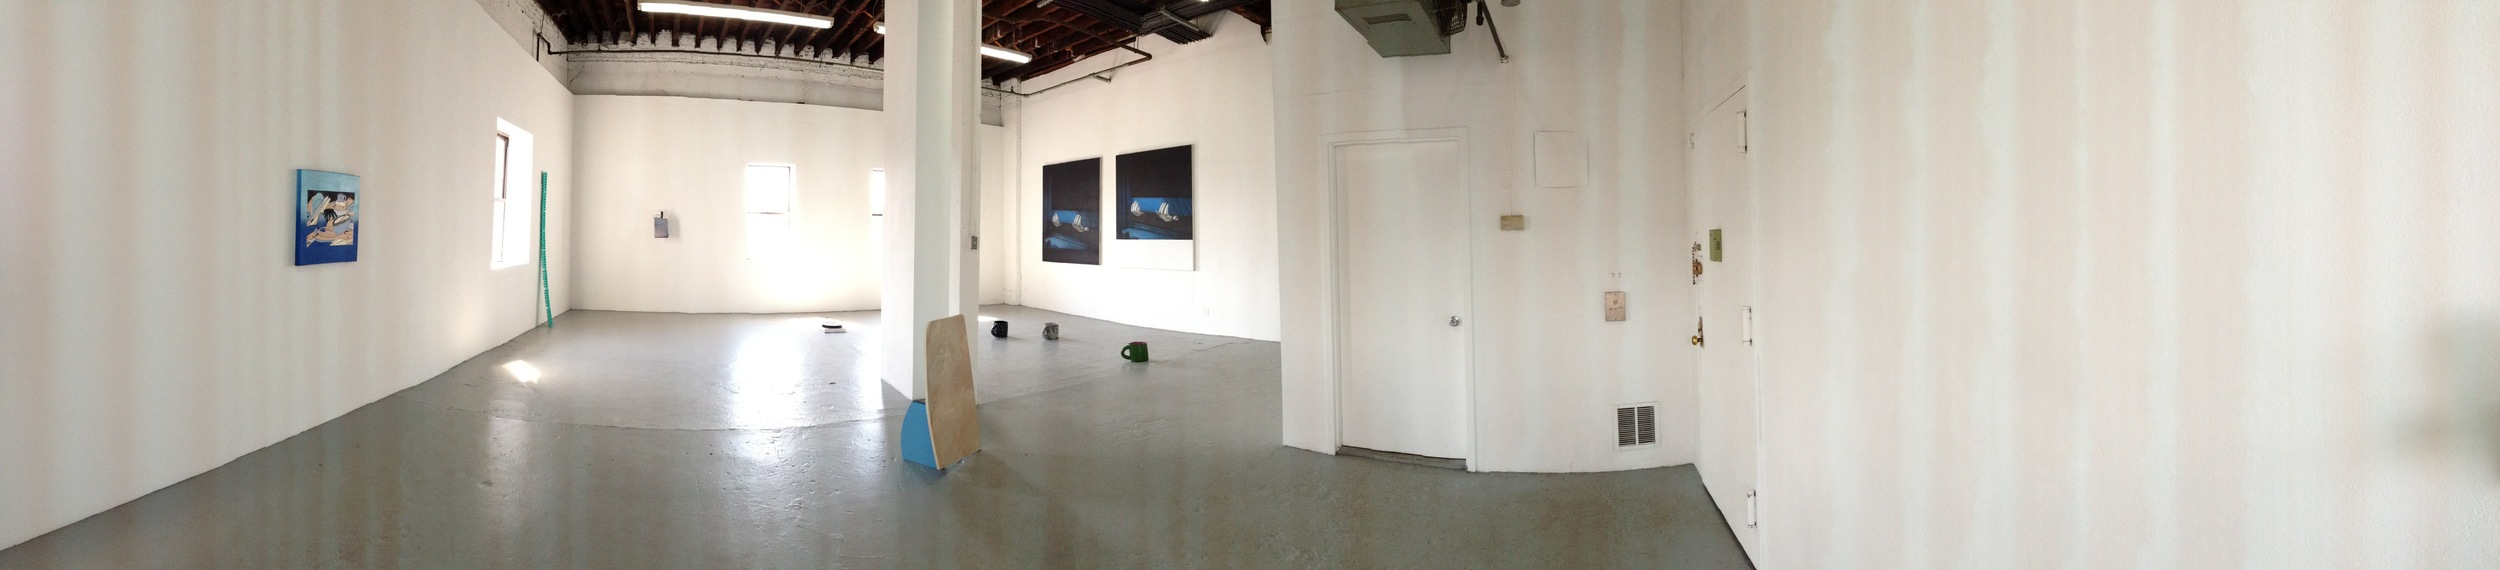 Exhibition Image, The Stuff That Dreams Are Made Of , Group Show, CLEARING, Brooklyn Photo Credit: Cincala Art Advisory